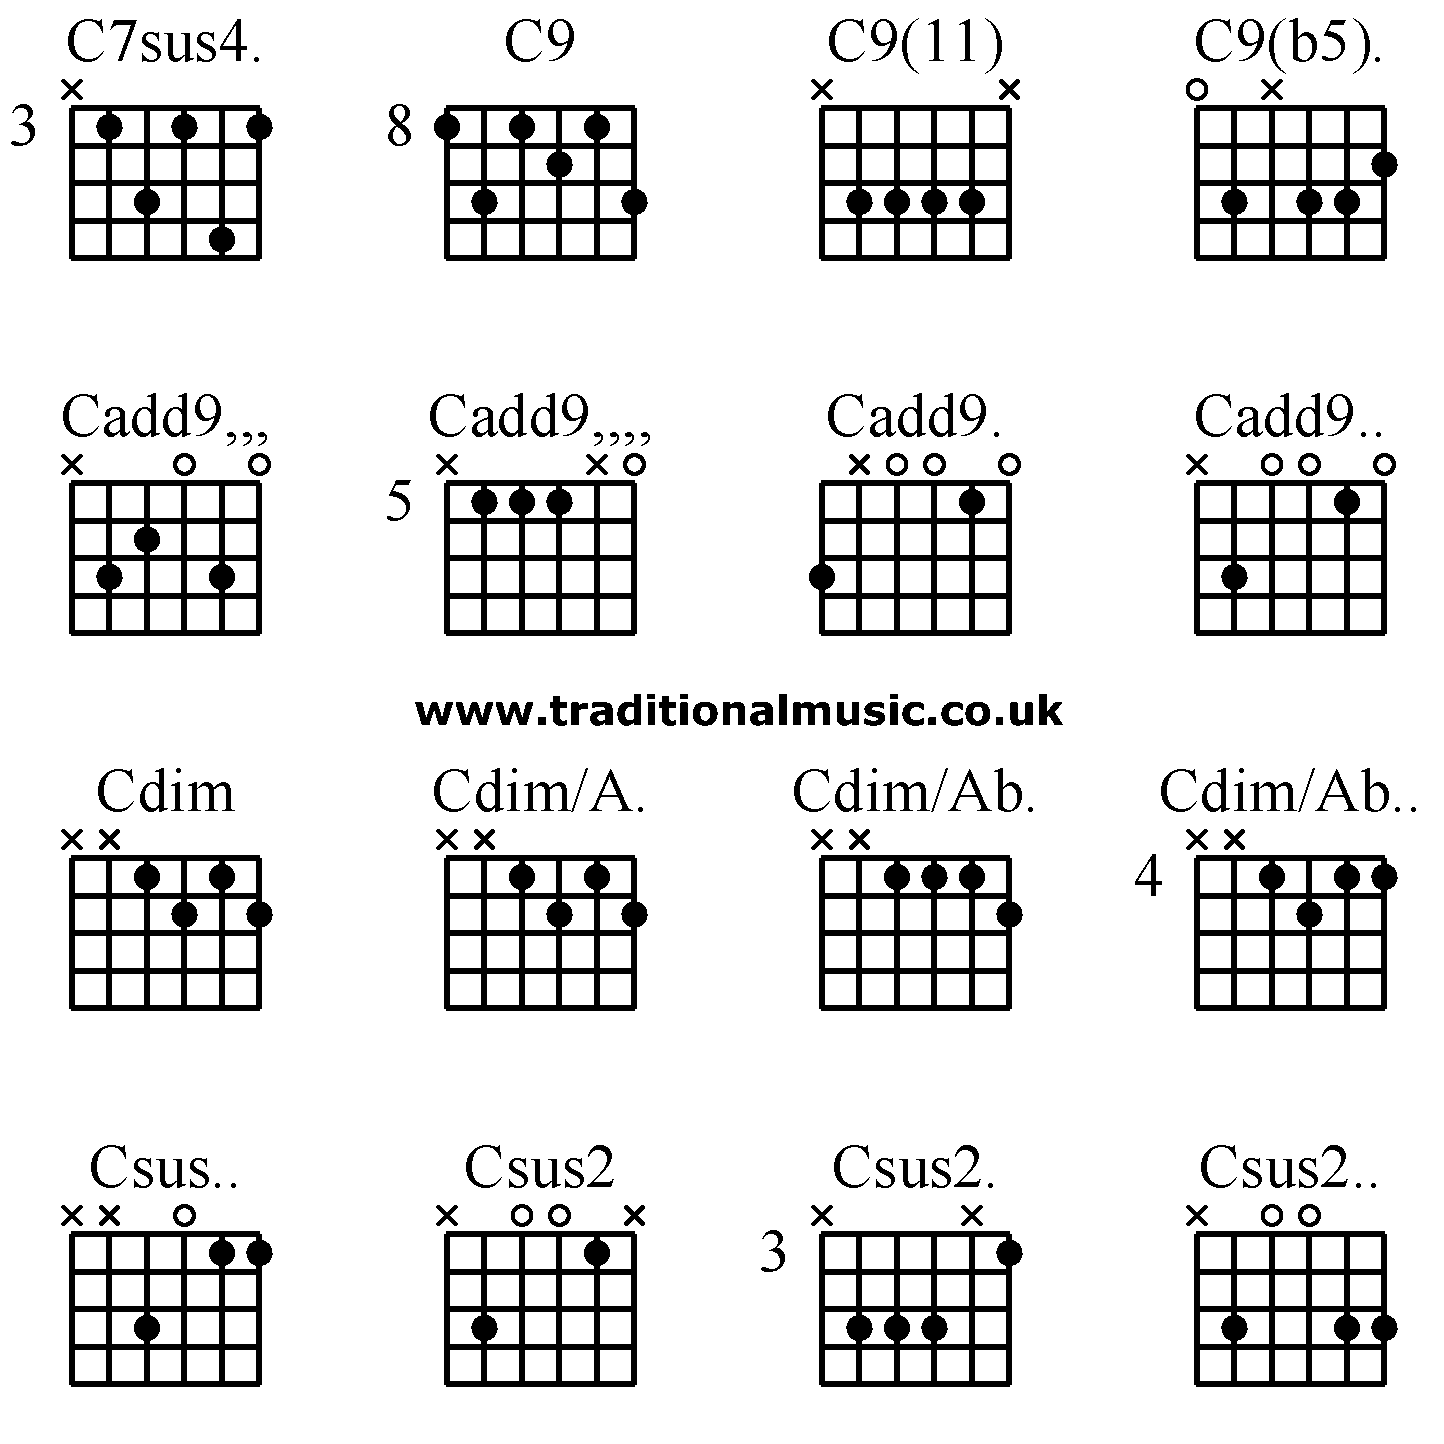 Guitar chords c04g 14441444 guitar chords i pinterest advanced chord chart and fingering diagram for guitar hexwebz Gallery